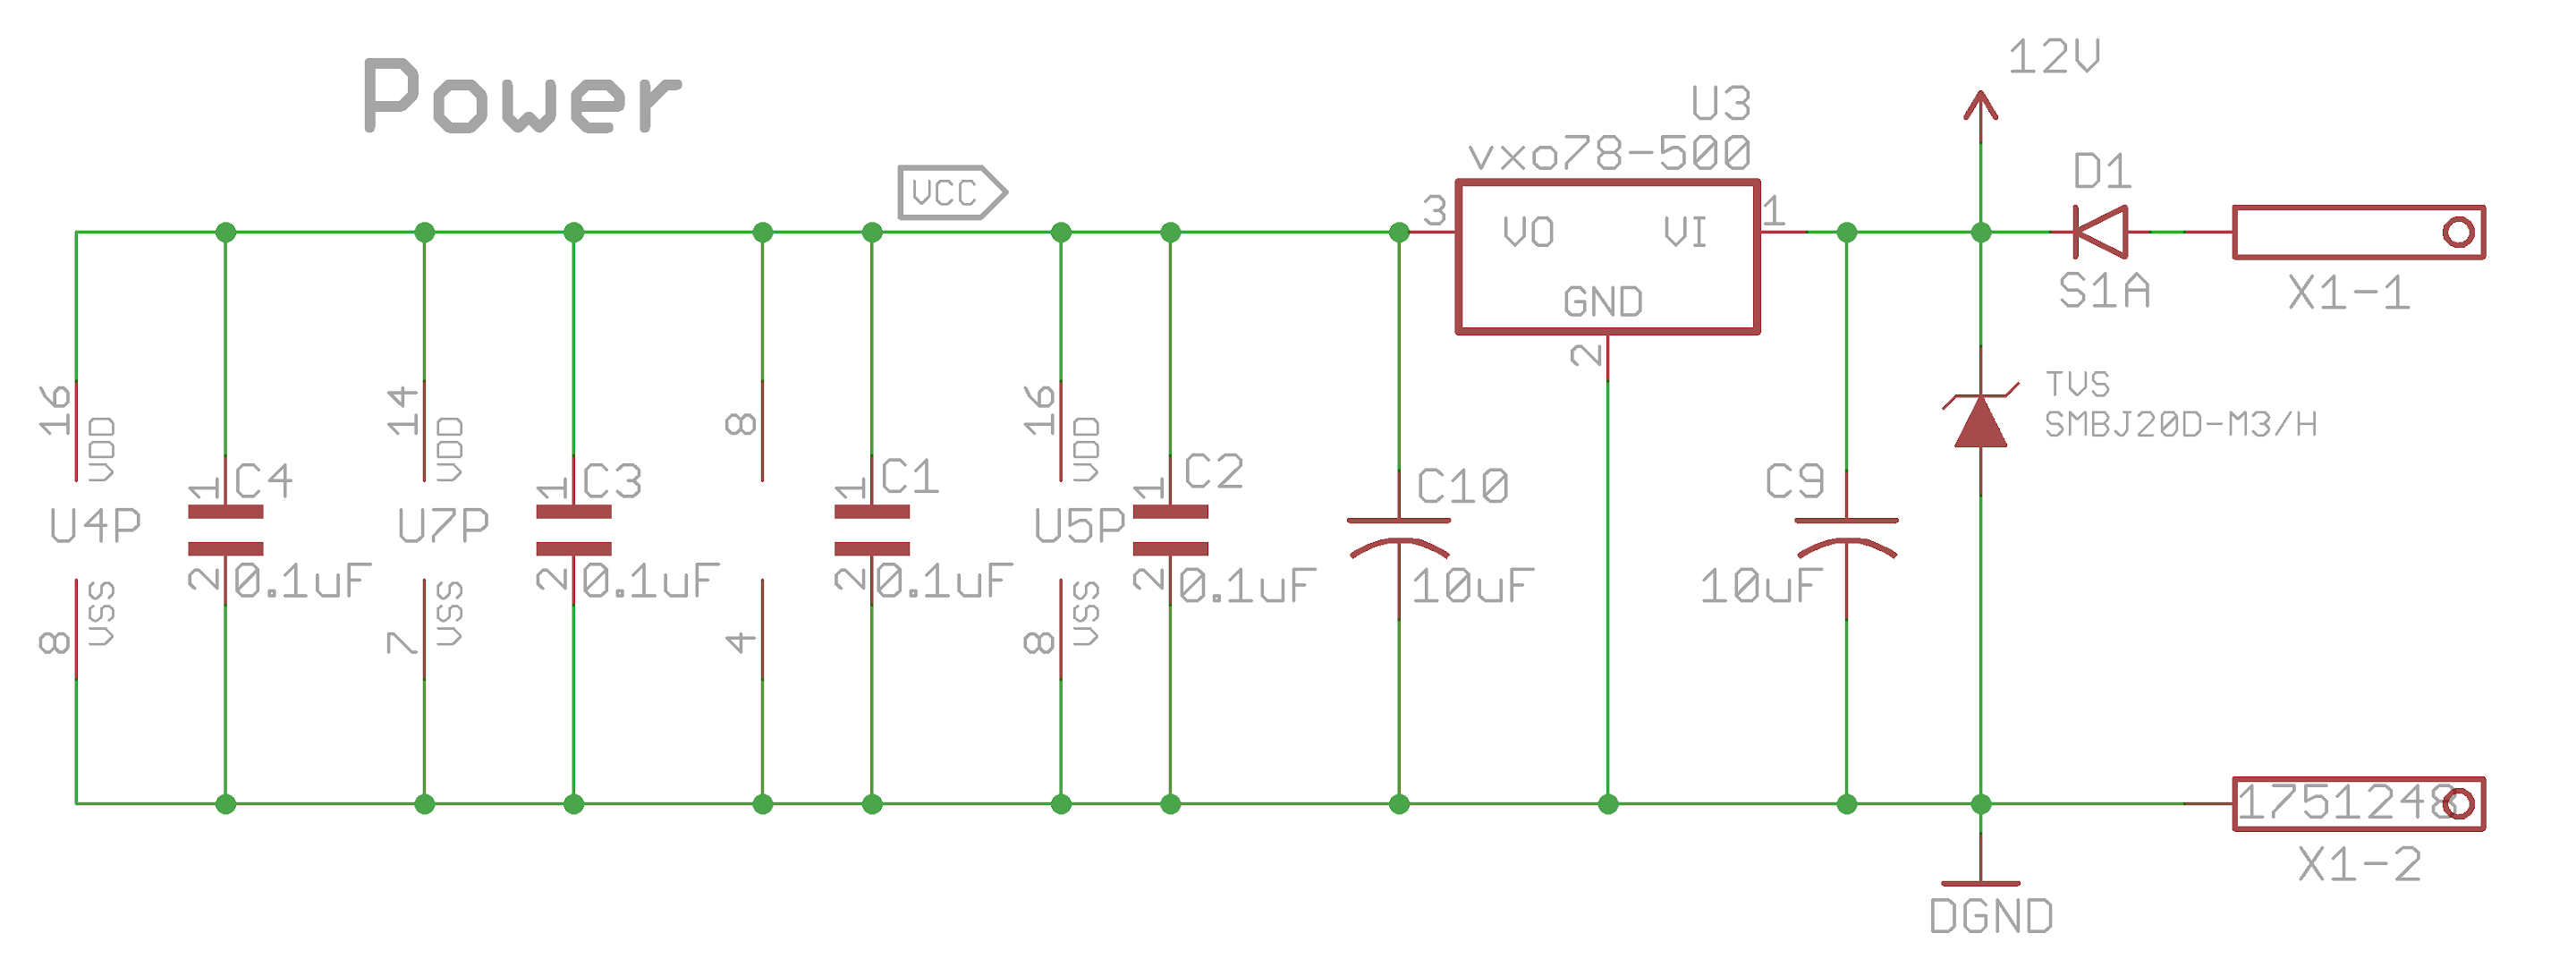 Tvs Diode Layout Considerations For Automotive Application Page 1 Wire Harness Board I Am Using The Following Power Design A Reverse Protection And 78xx Compatible Switching Dc To Converter With 500ma Capacity